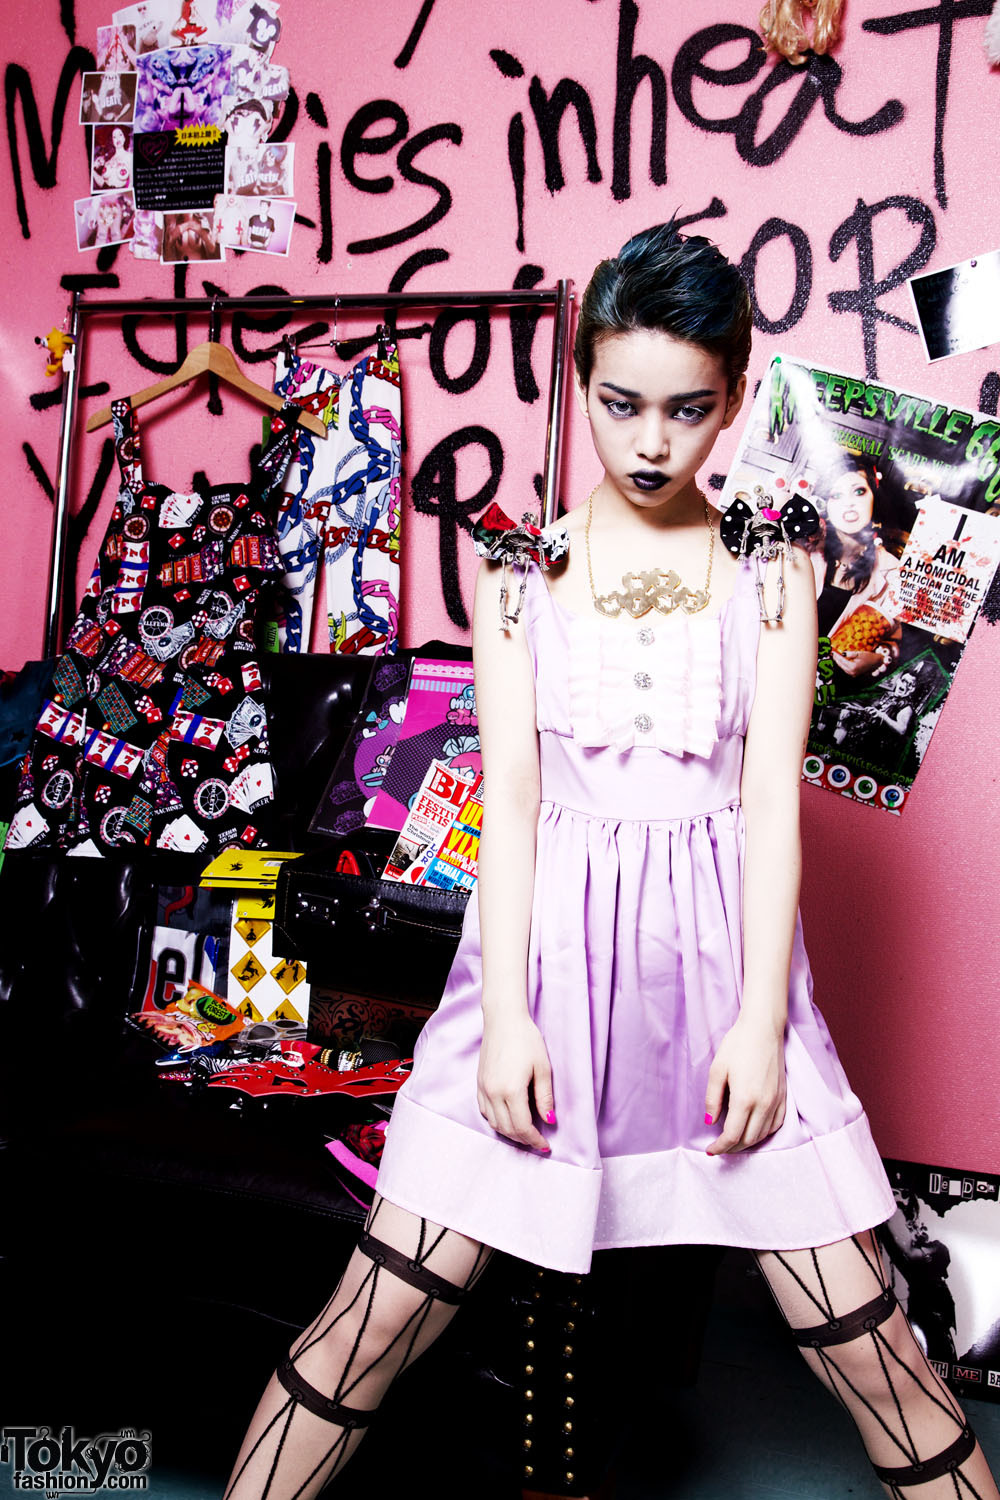 "Just posted a profile of Tokyo's ""Bright Despair"" fashion brand & boutique - Nude N Rude! Lots of pictures - including exclusive images of Hirari Ikeda modeling Nude N Rude fashion & accessories. Please check it!"